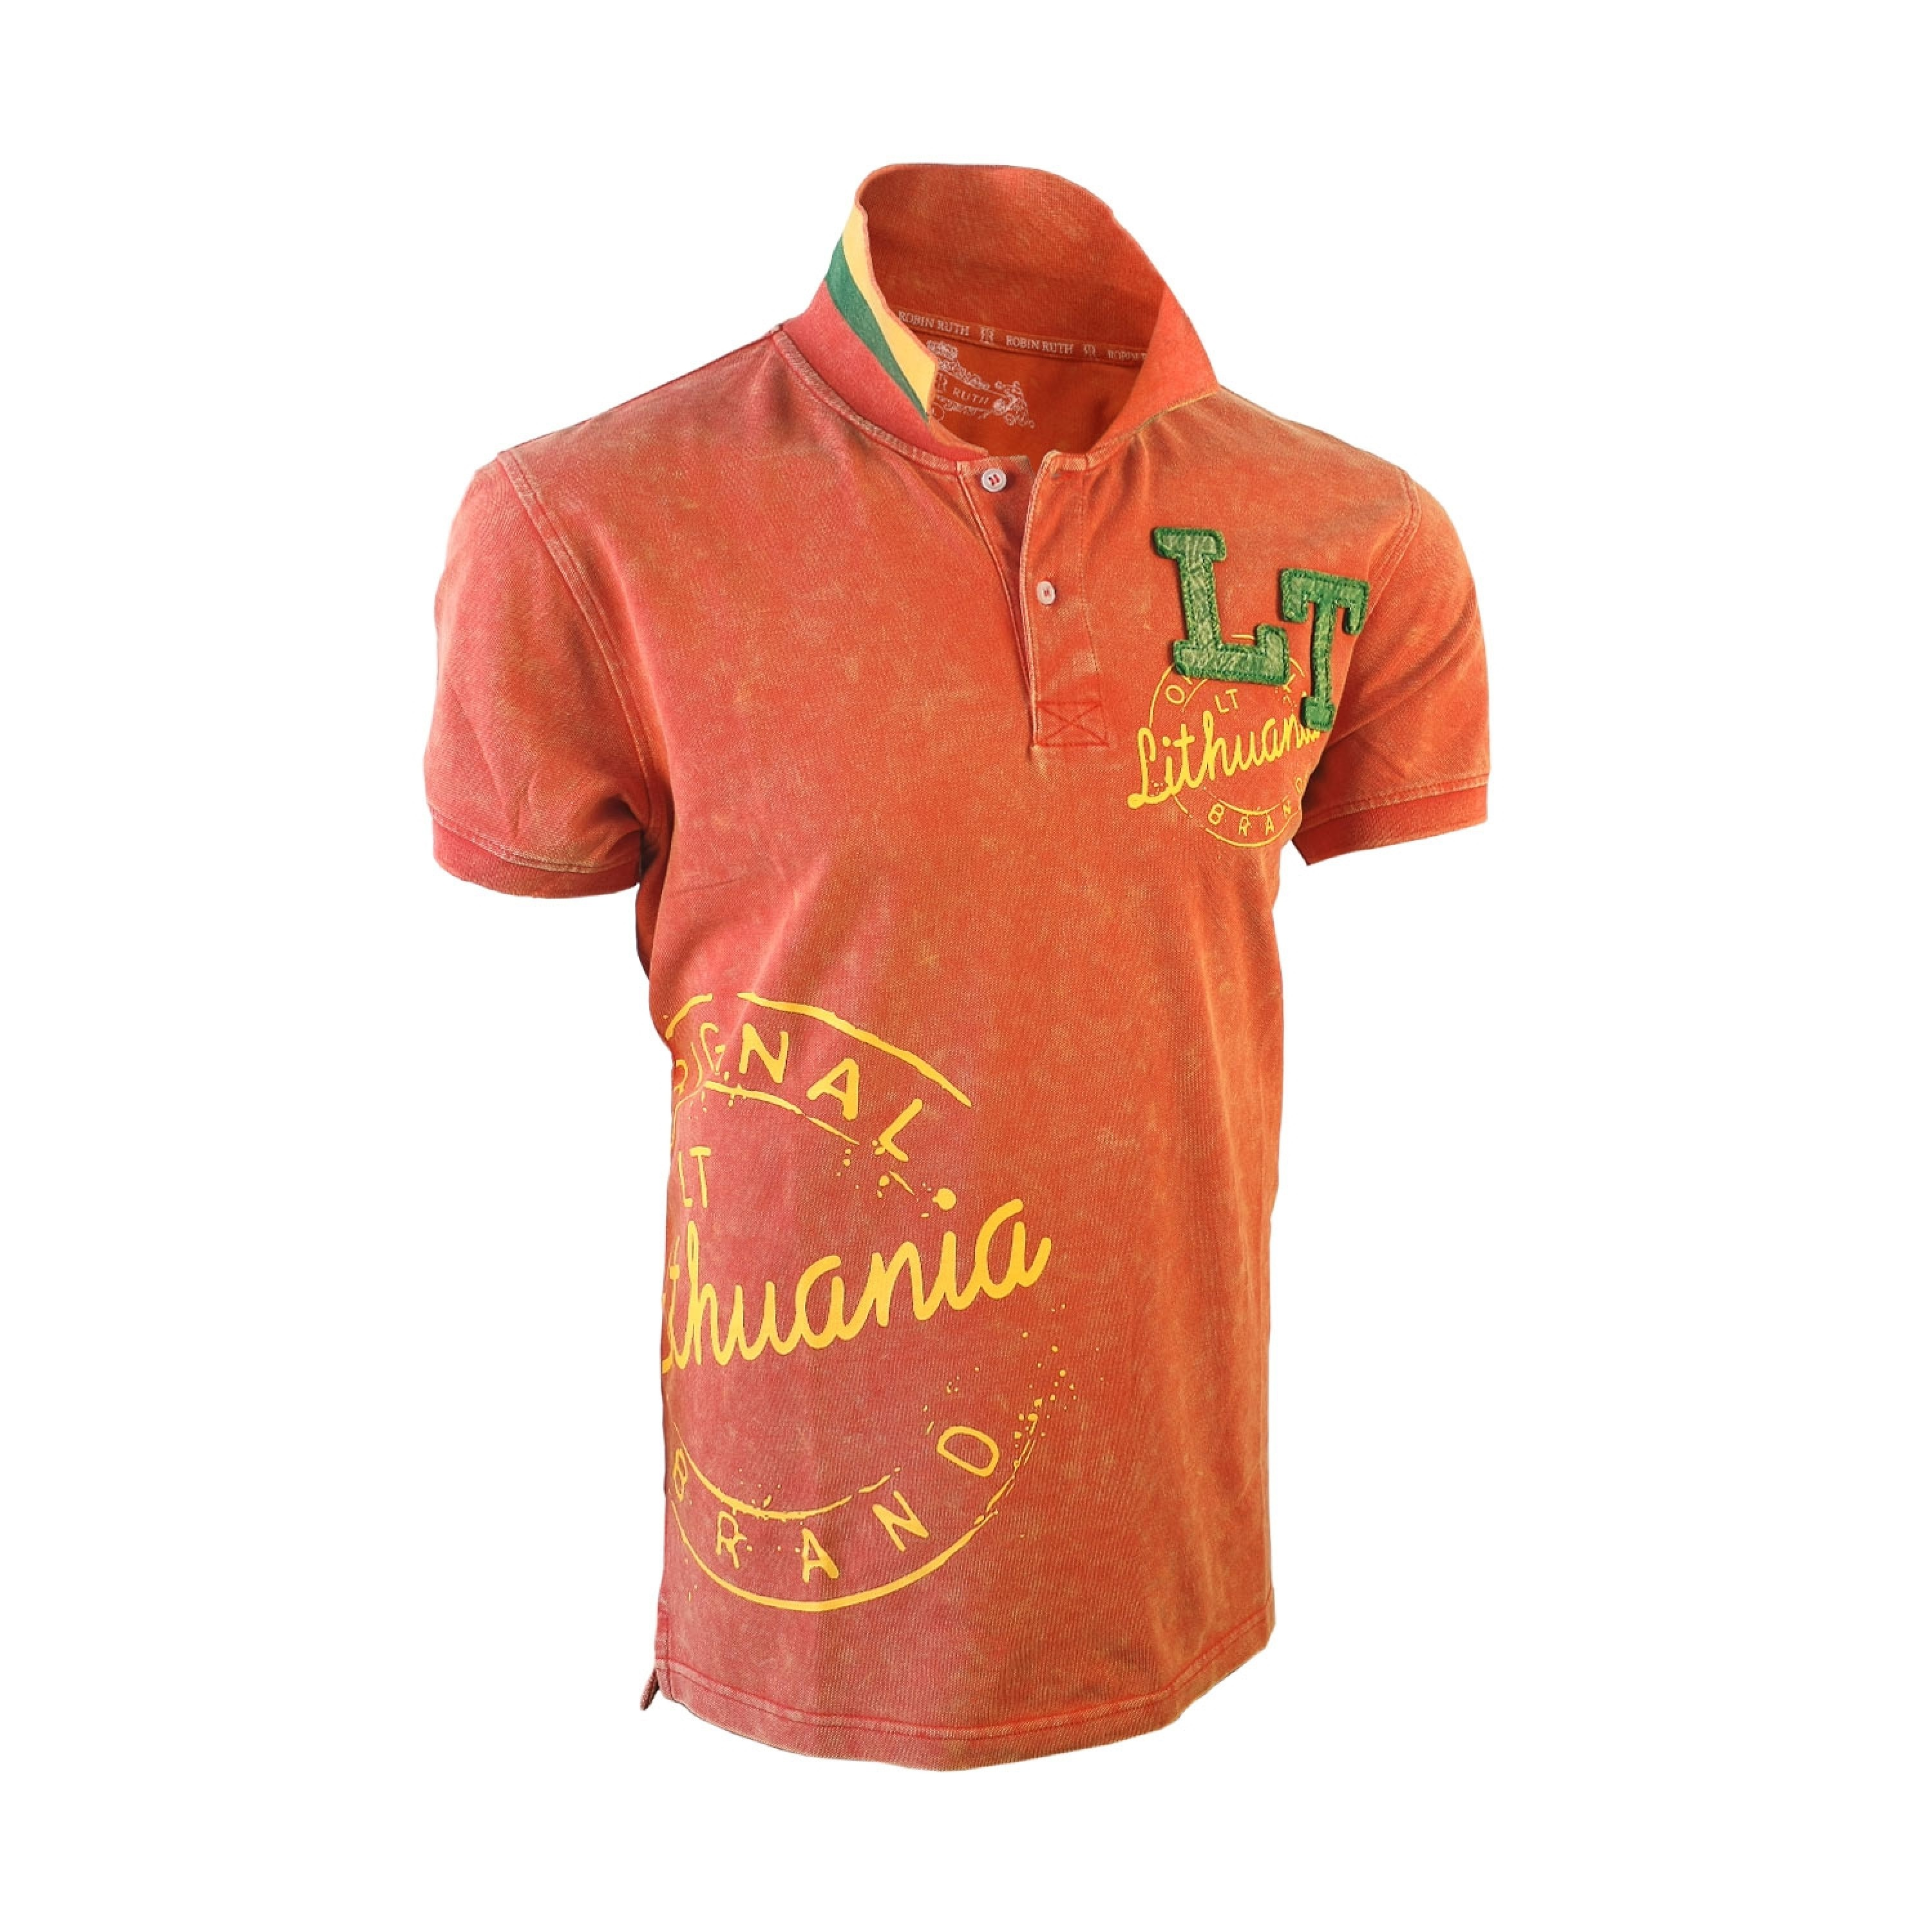 Red Polo T Shirts Lithuania Lt Online Price Citysouvenirs